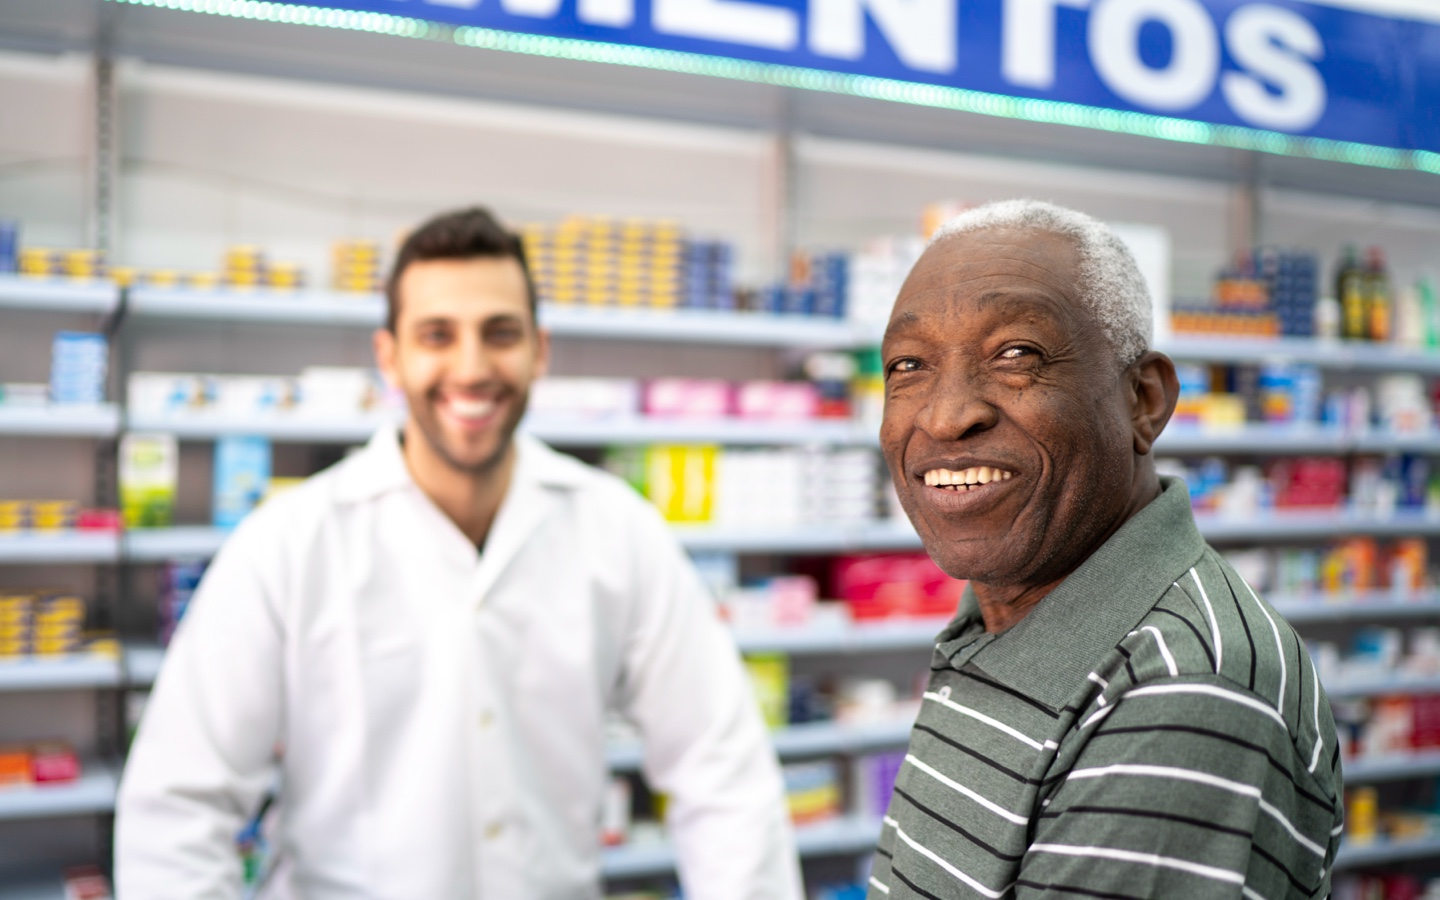 Old man at a pharmacy counter with a pharmacy attendant both smilling to the camera.